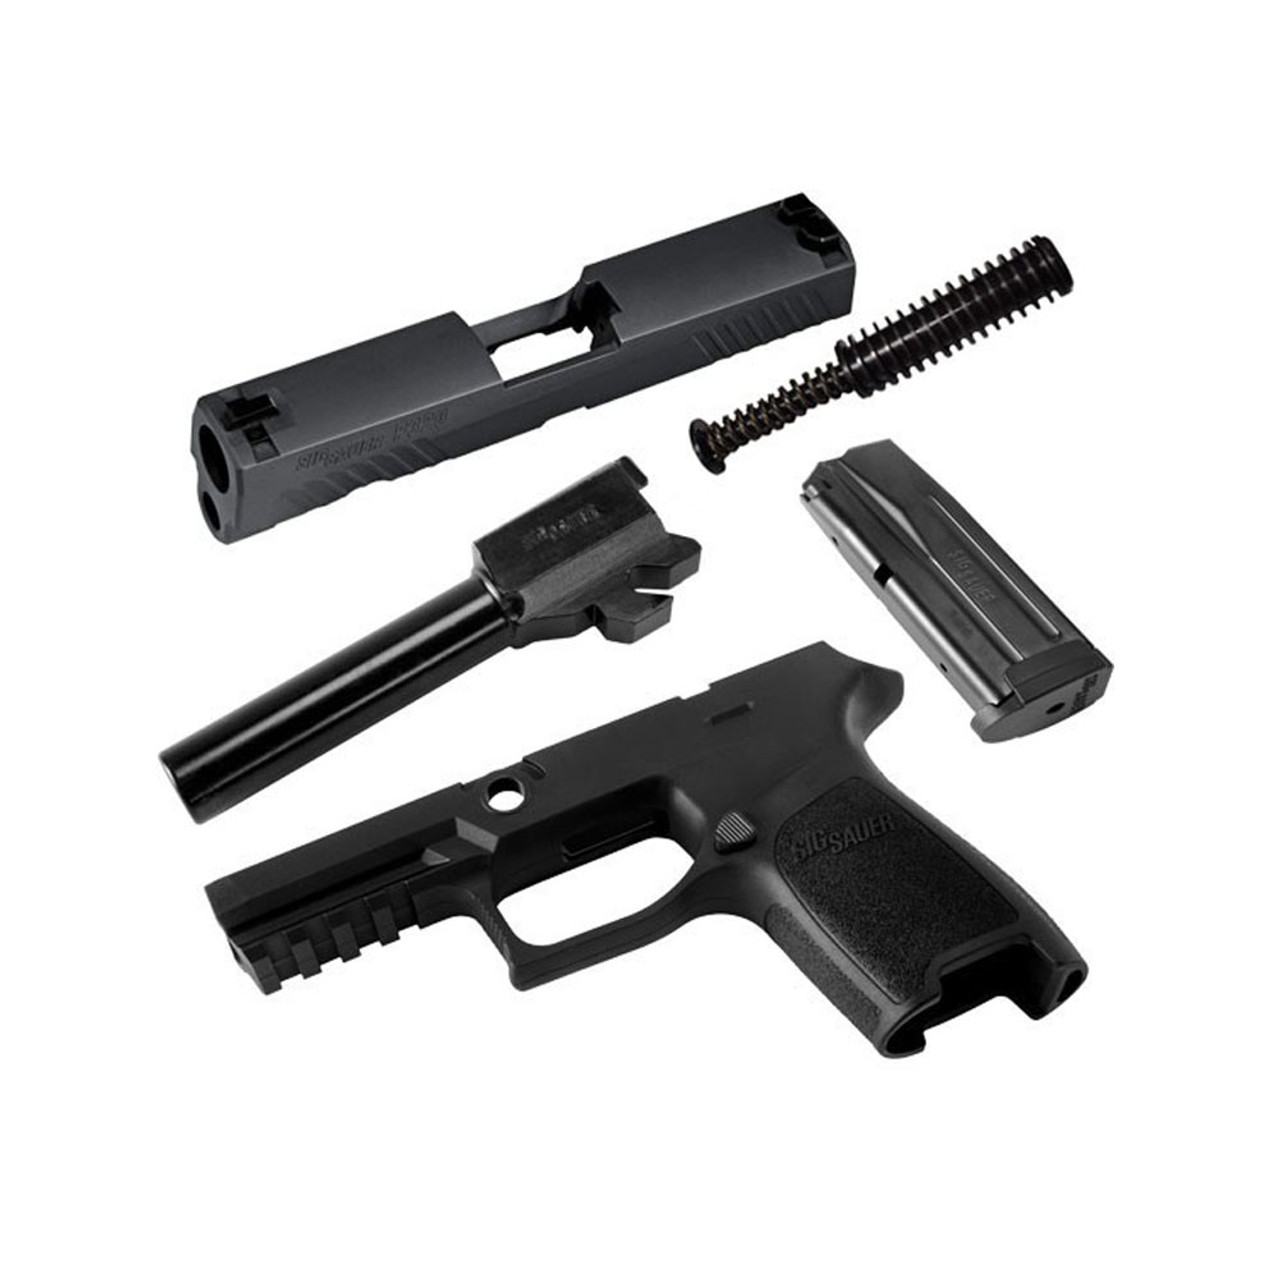 hight resolution of sig sauer p320 compact 9mm 15rd mag black caliber x change kit calx